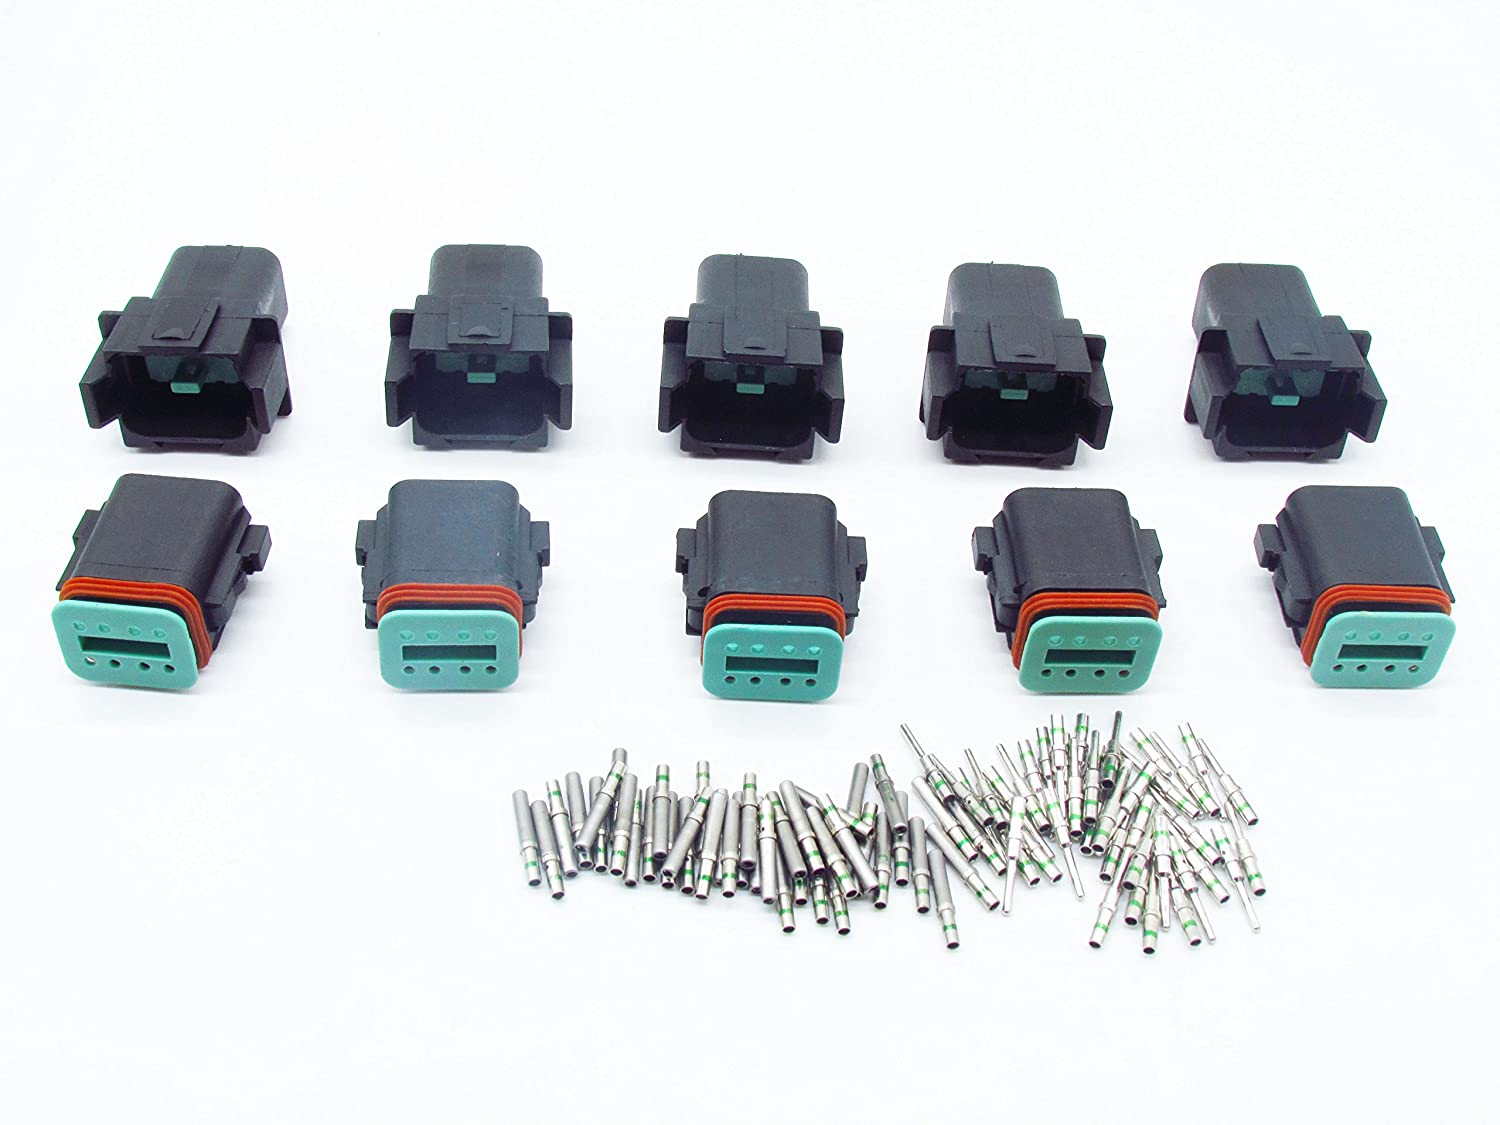 CNKF 5 Sets DT 8 Pin black male//female auto Waterproof Electrical Wire Connector Plug DT06-8S//DT04-8P with Barrel Style 14 AWG Terminals